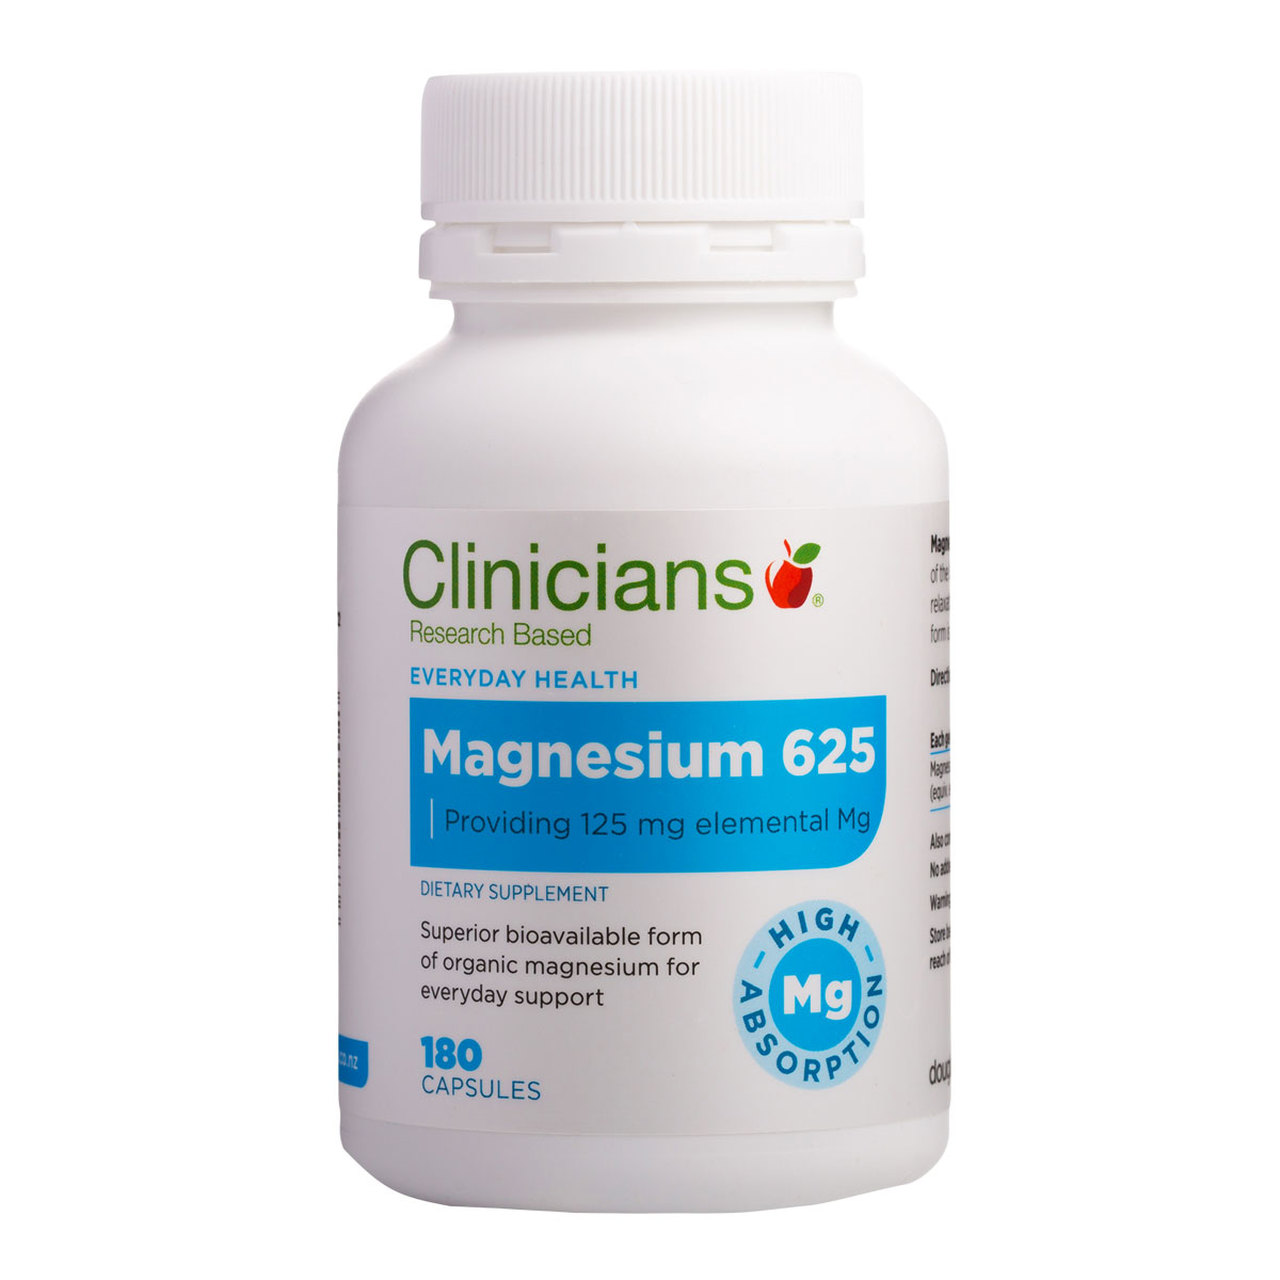 Clinicians Magnesium Capsules 90 TWIN PACK